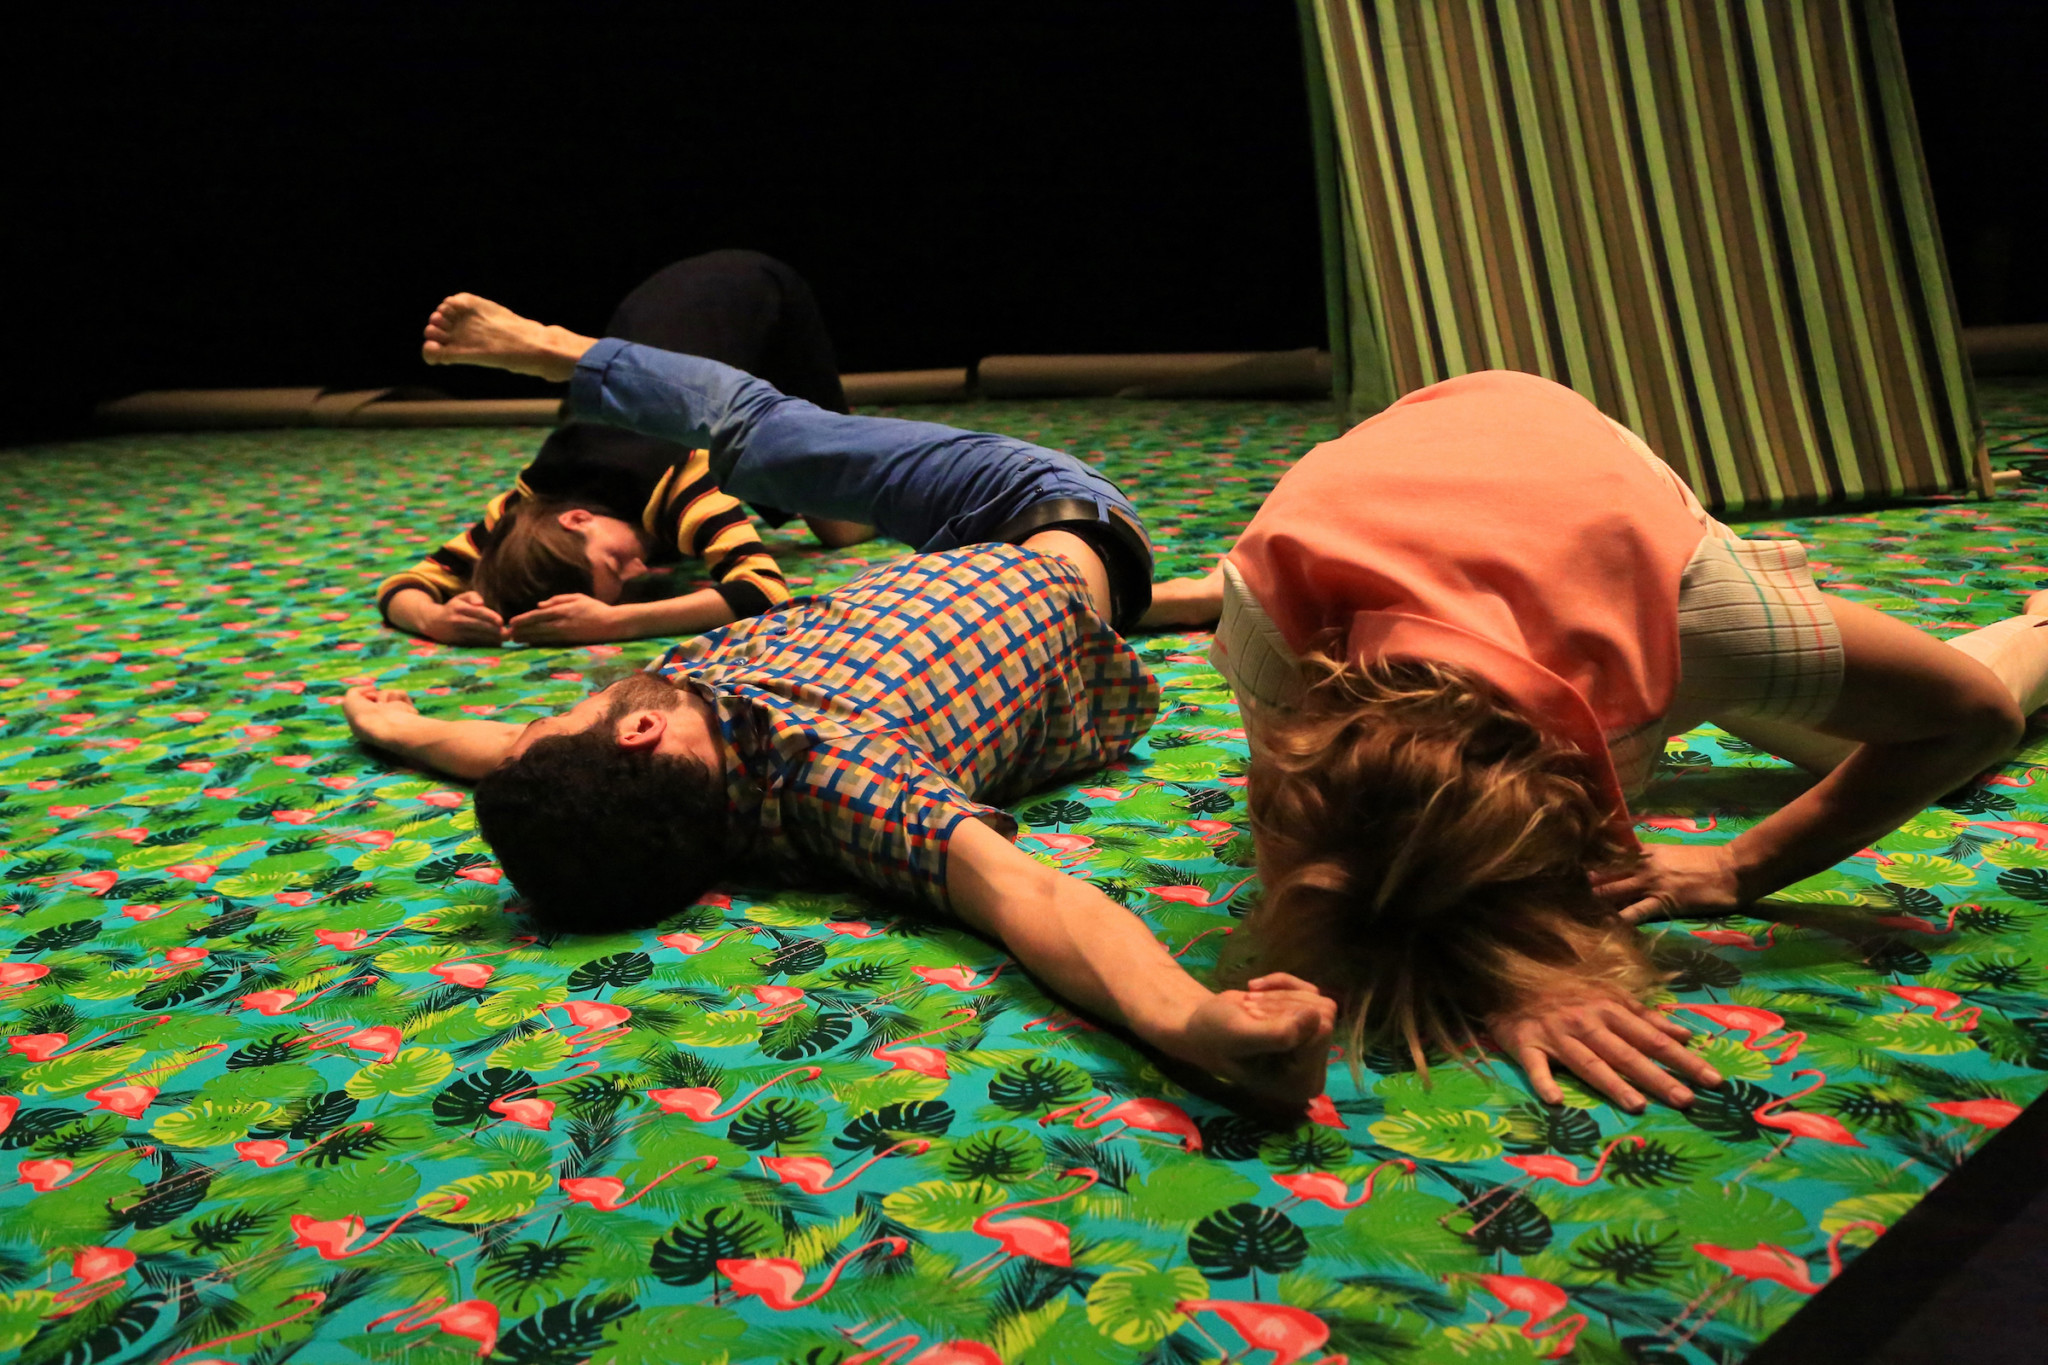 WEE/Francesco Scavetta (Norway/Italy) Hardly Ever Thursday-Saturday April 5-7, 2018 at 8pm